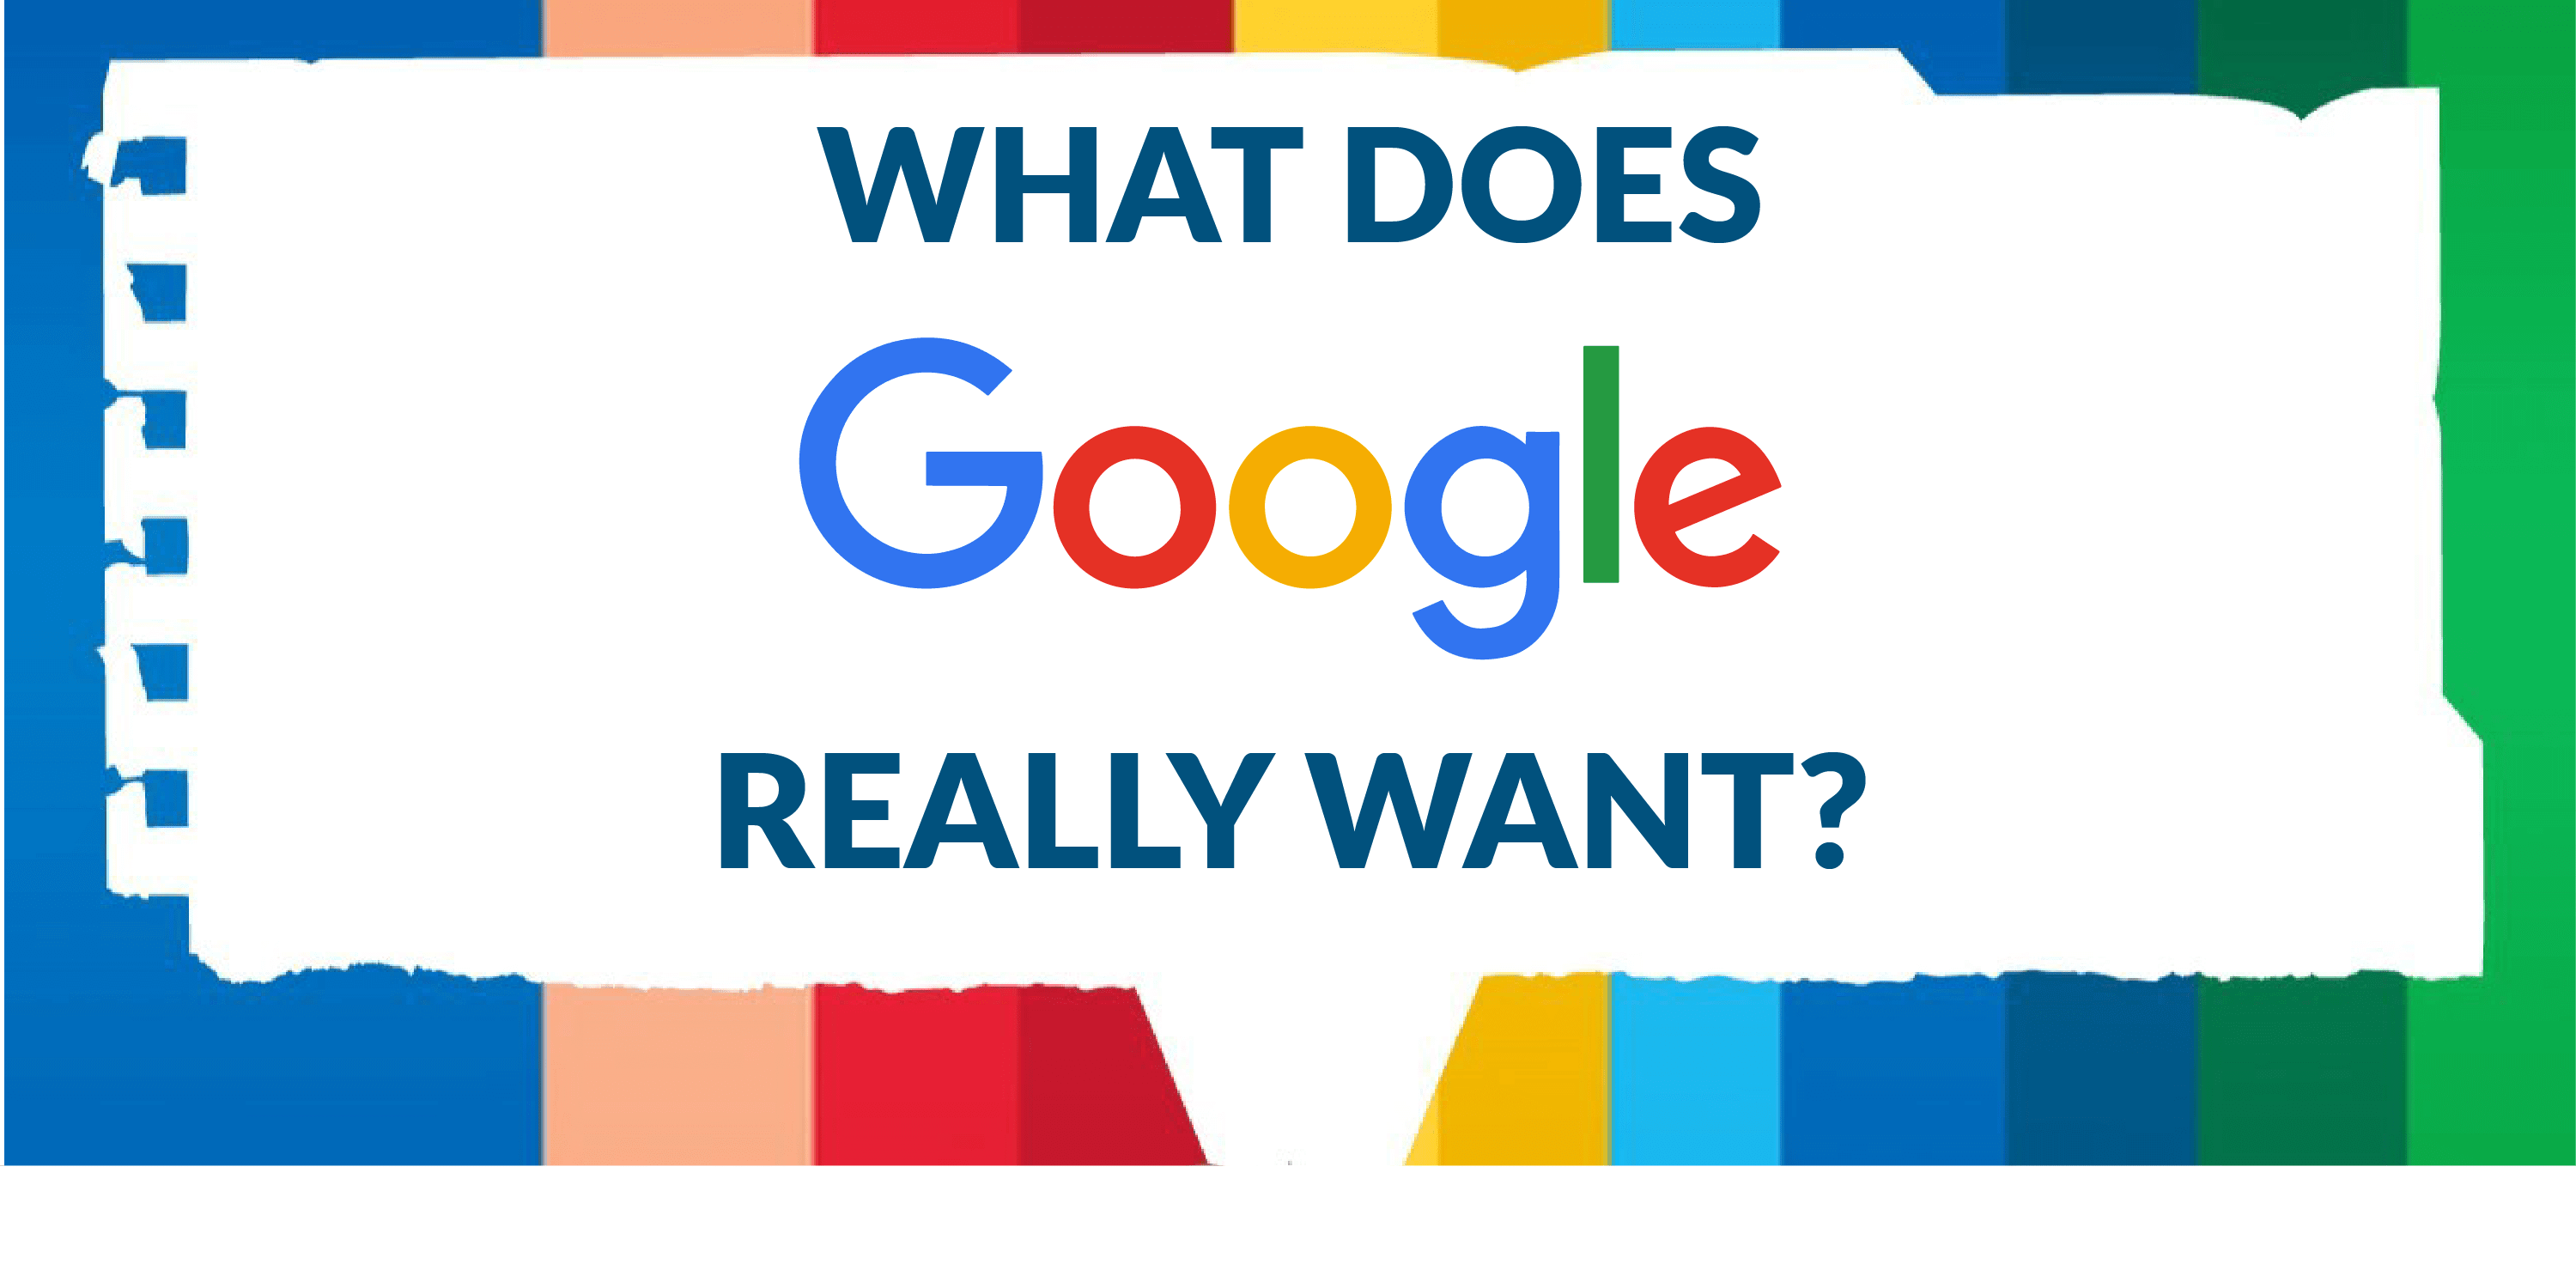 what does google really want